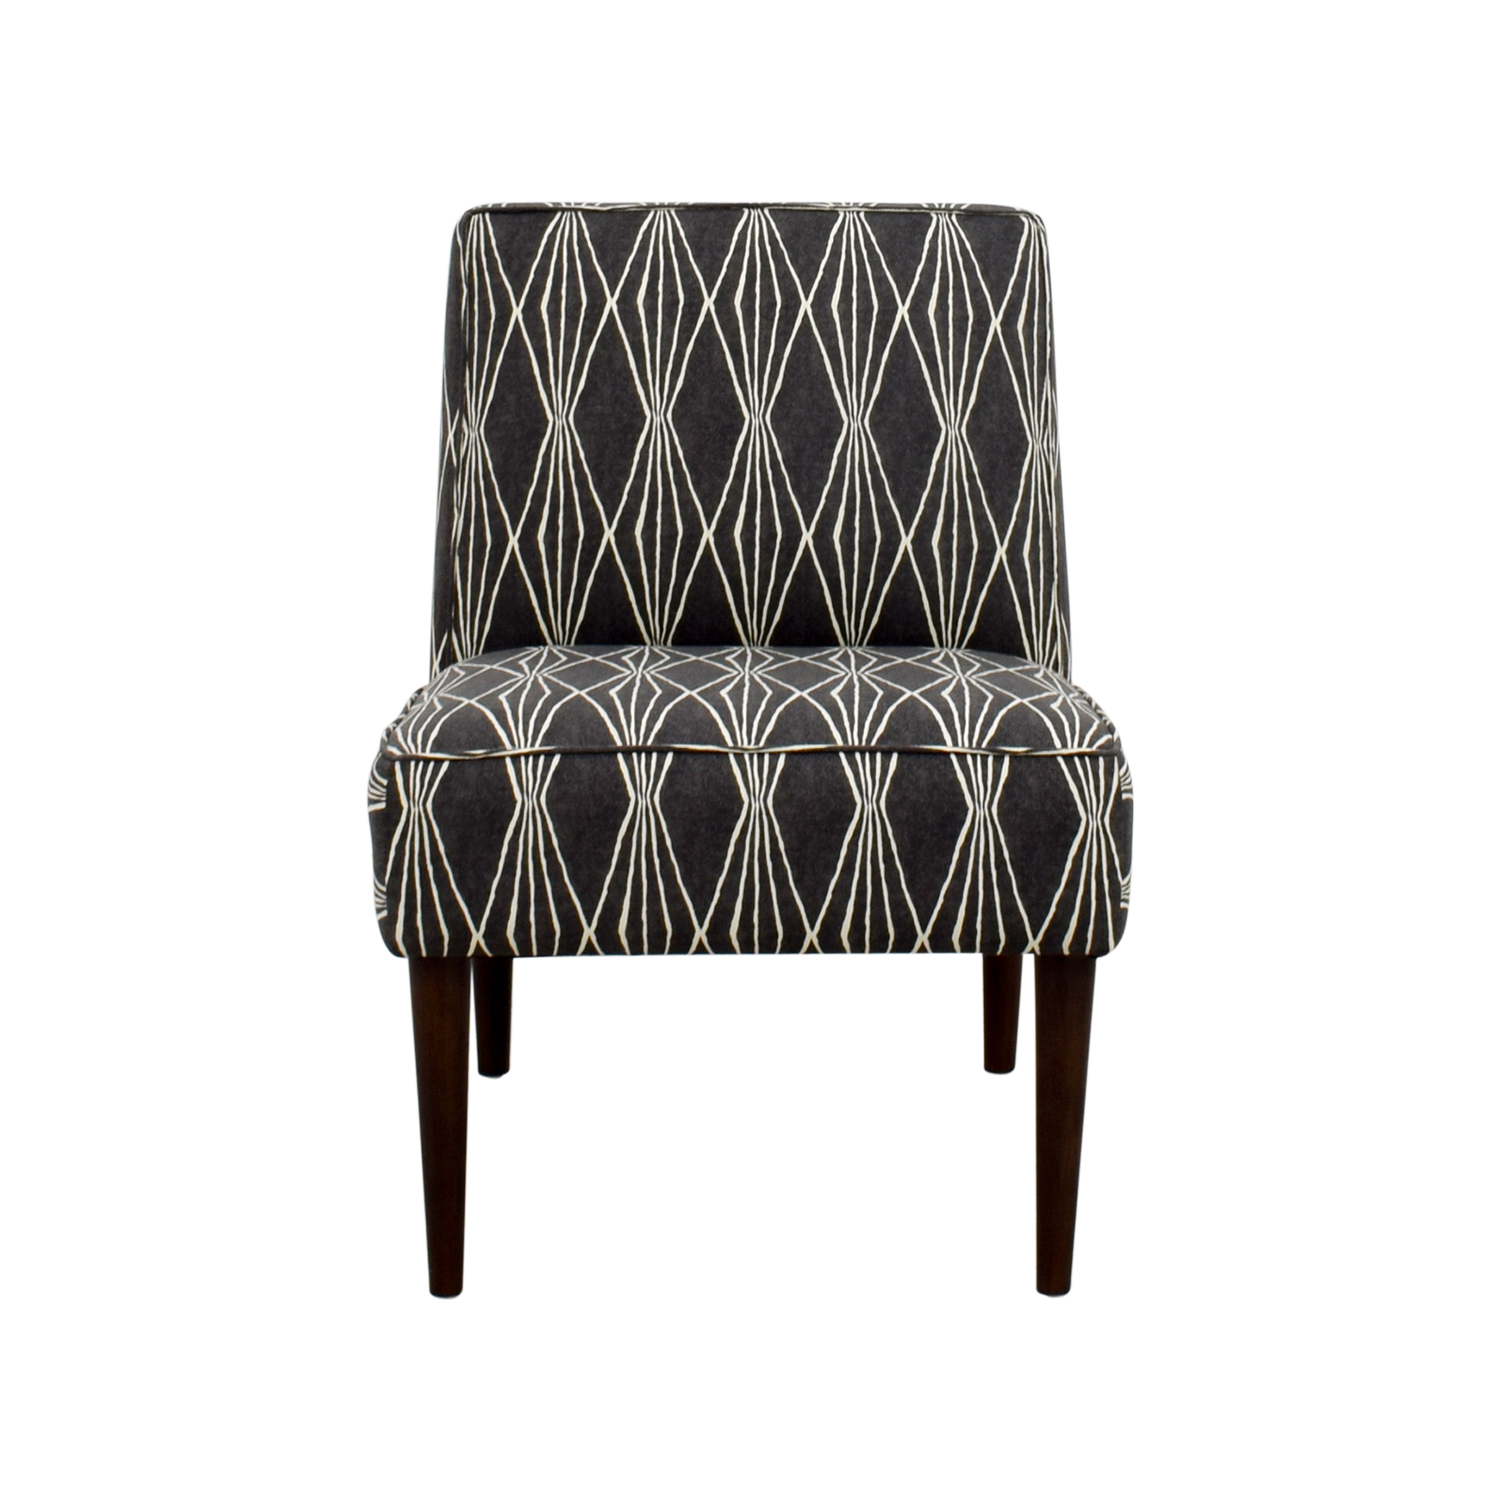 Macys Roselake Accent Chair With Otto: Macy's Macy's Palmdale Handcut Shapes Fabric